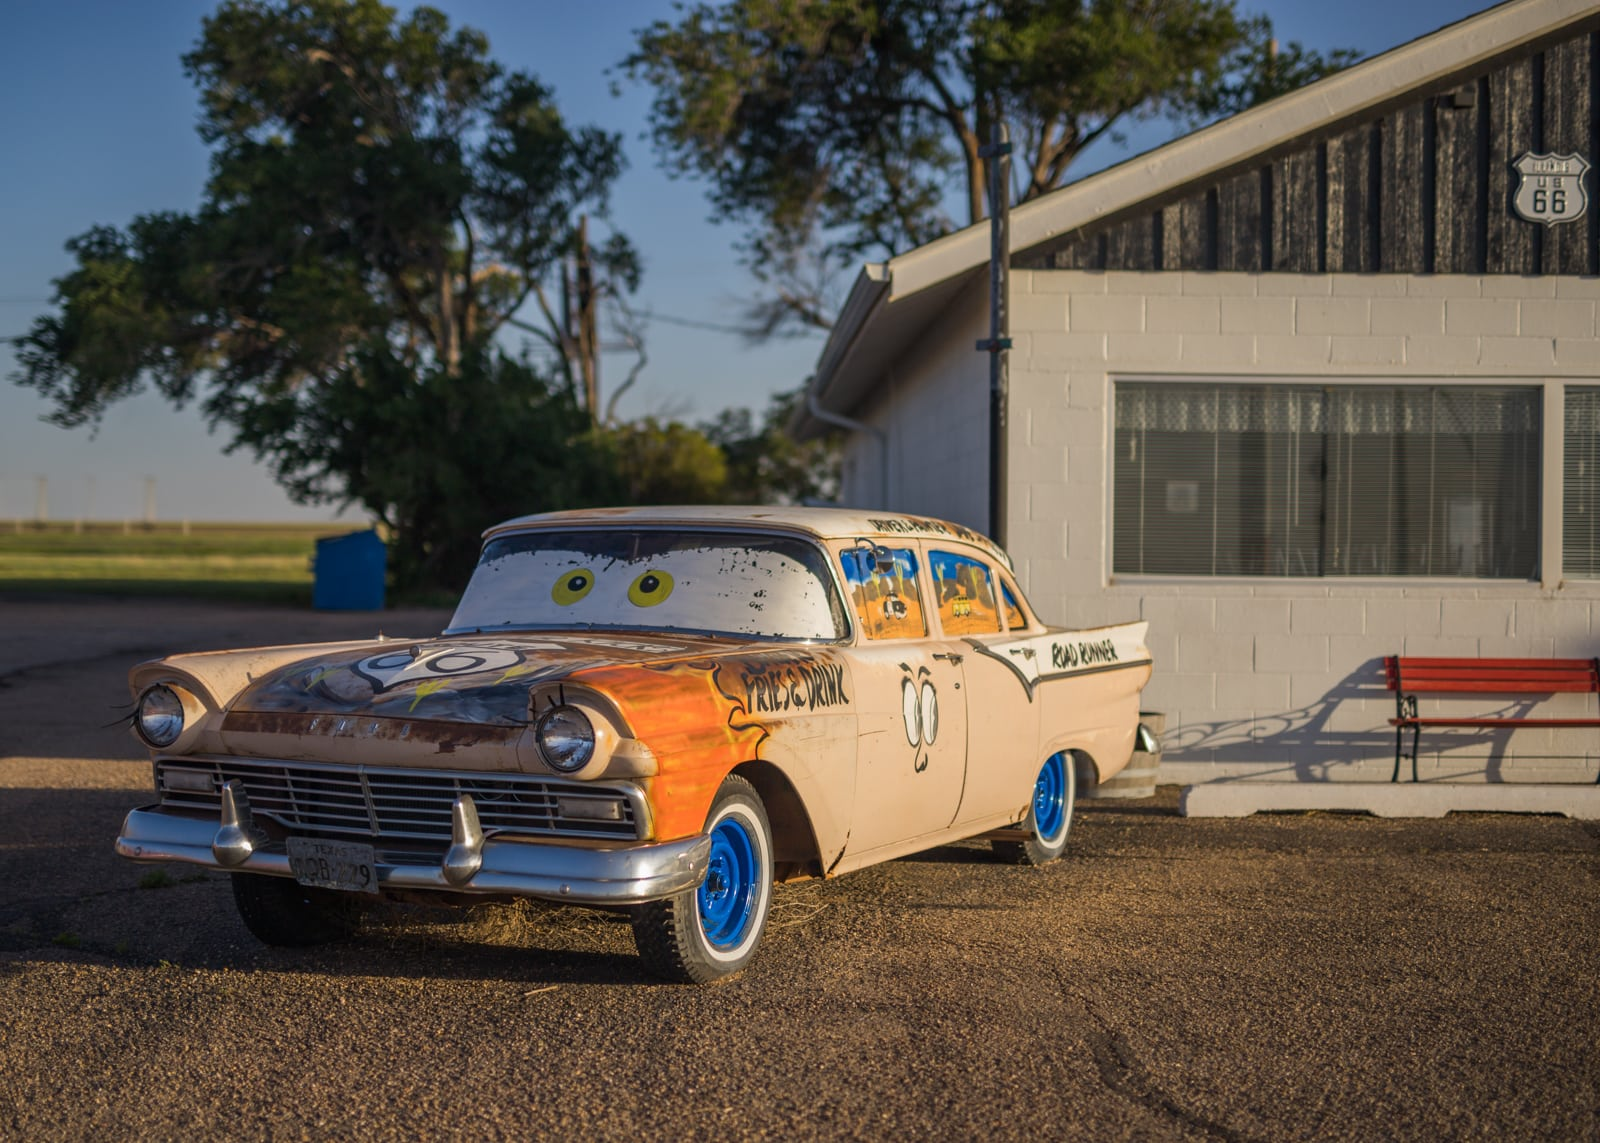 An antique car painted like a character from the Pixar movie Cars at the Route 66 Midpoint